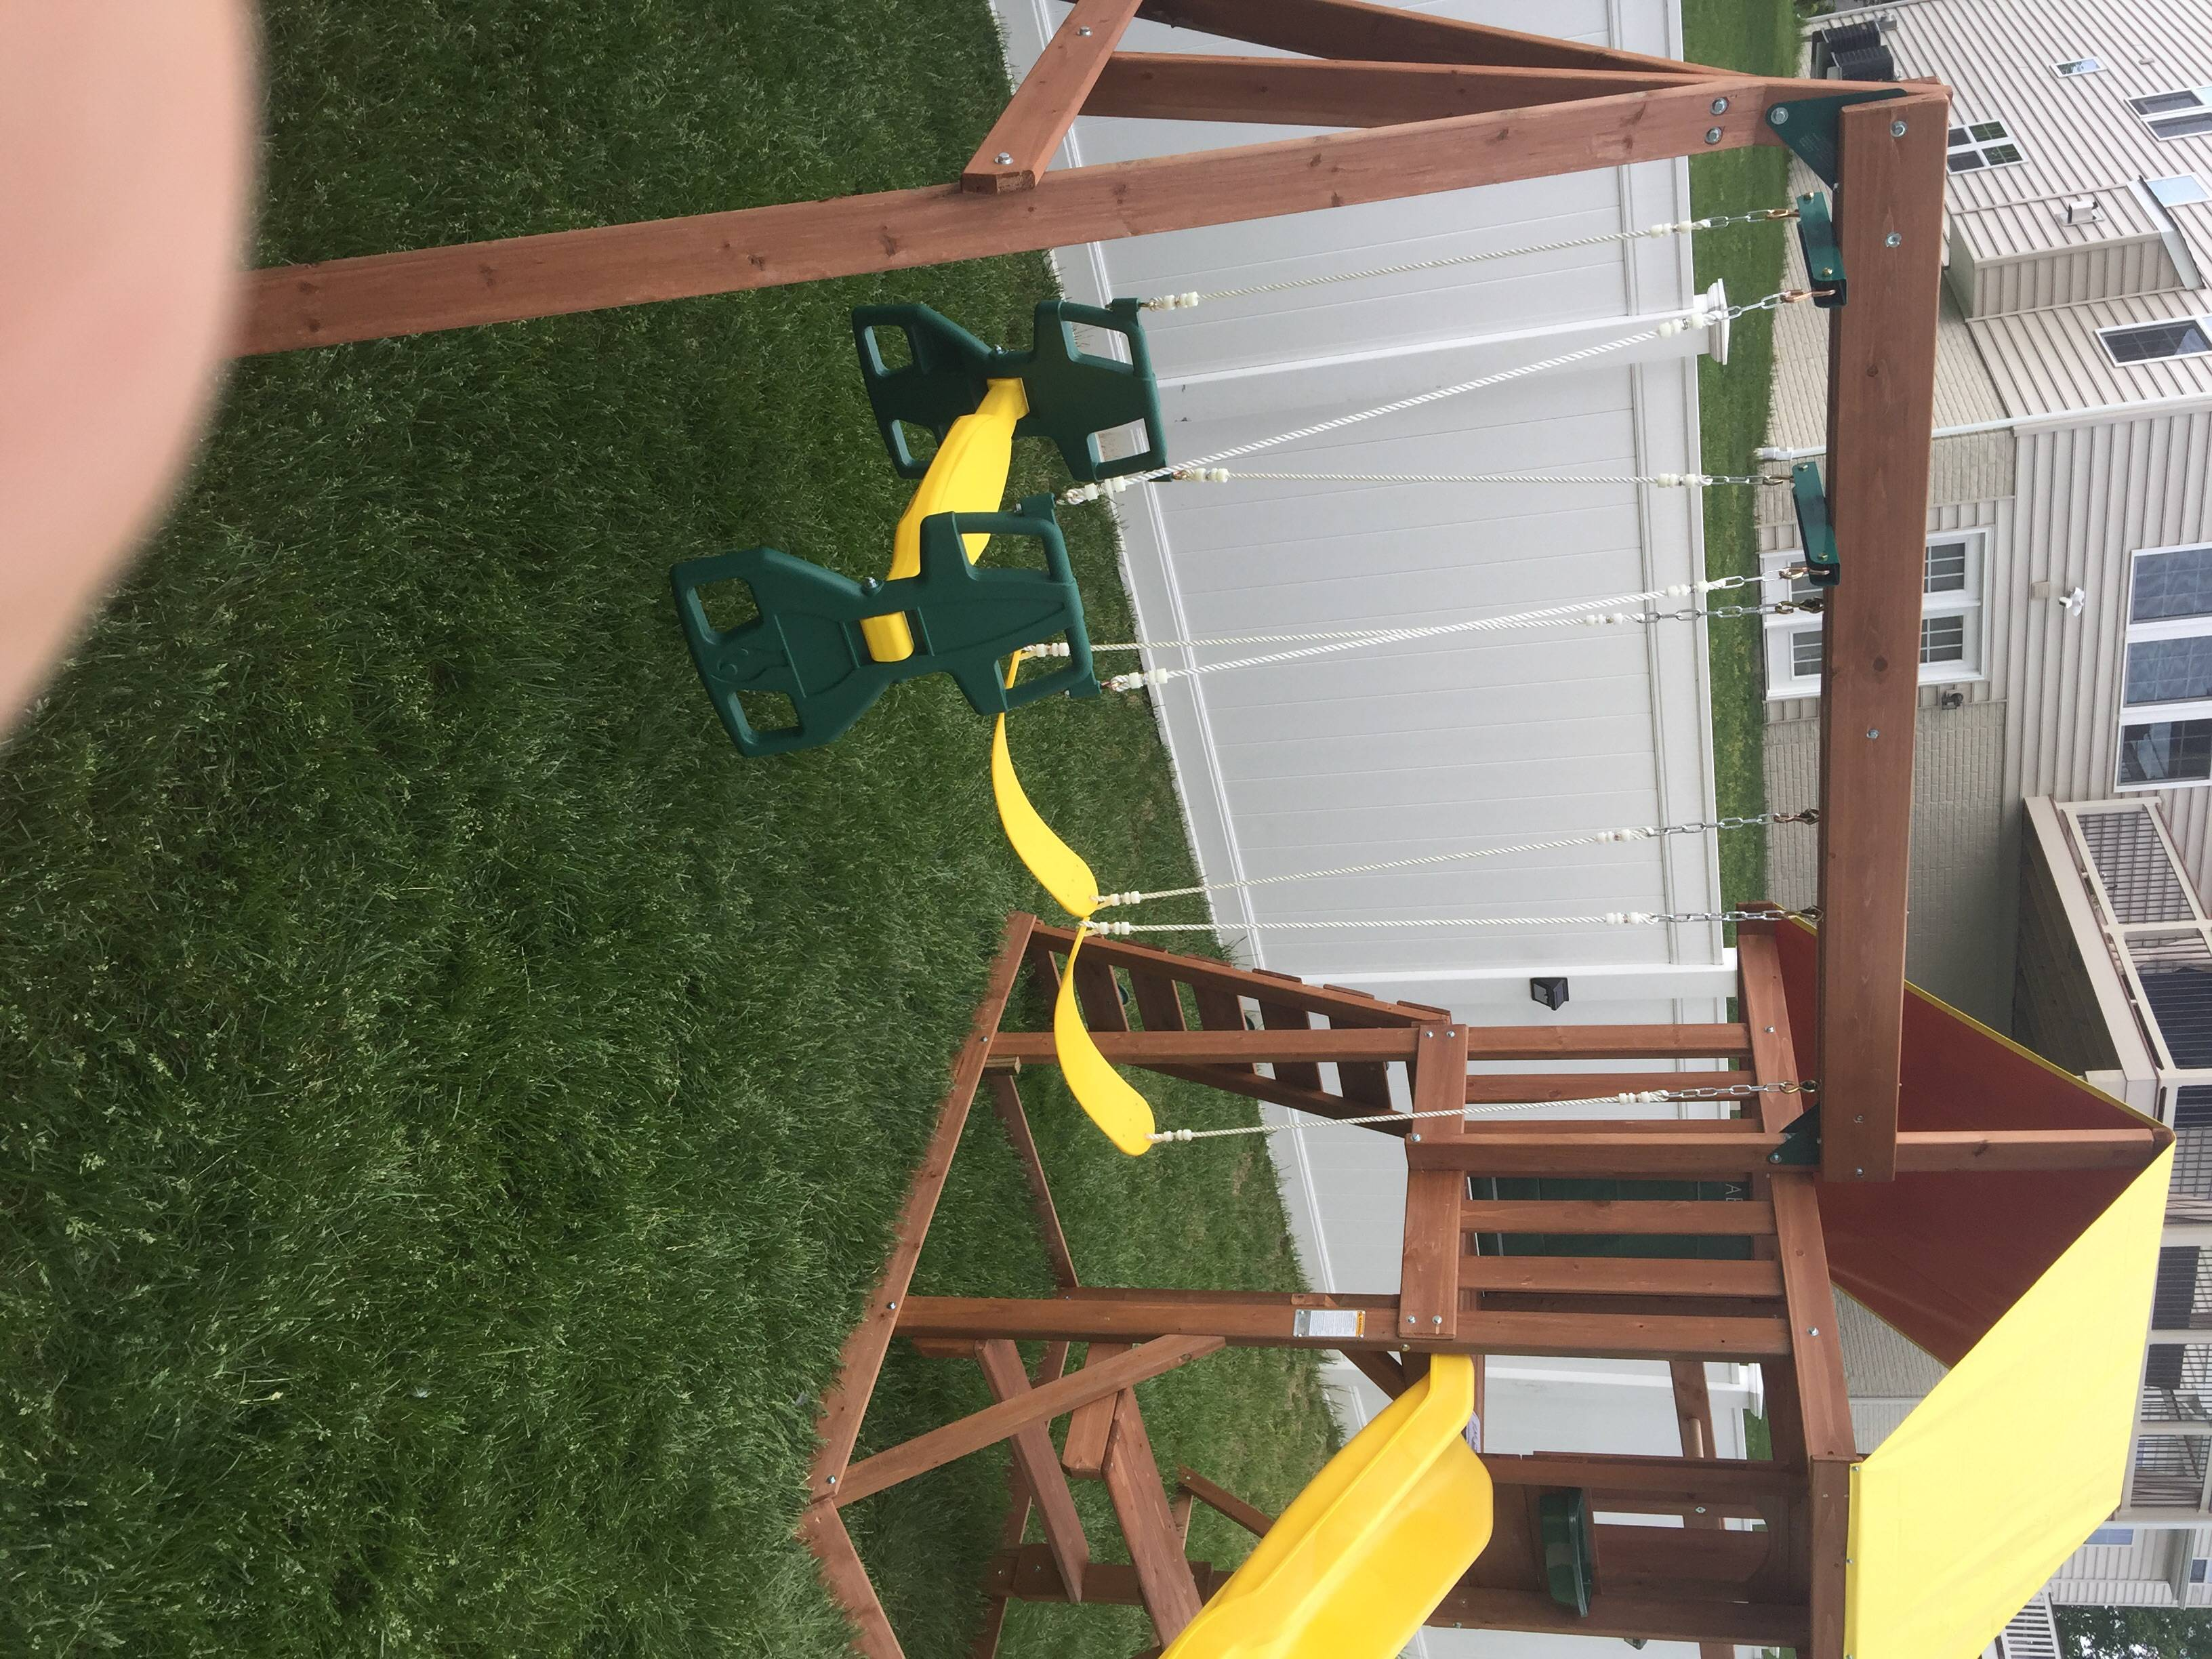 swing set installers in damascus MD